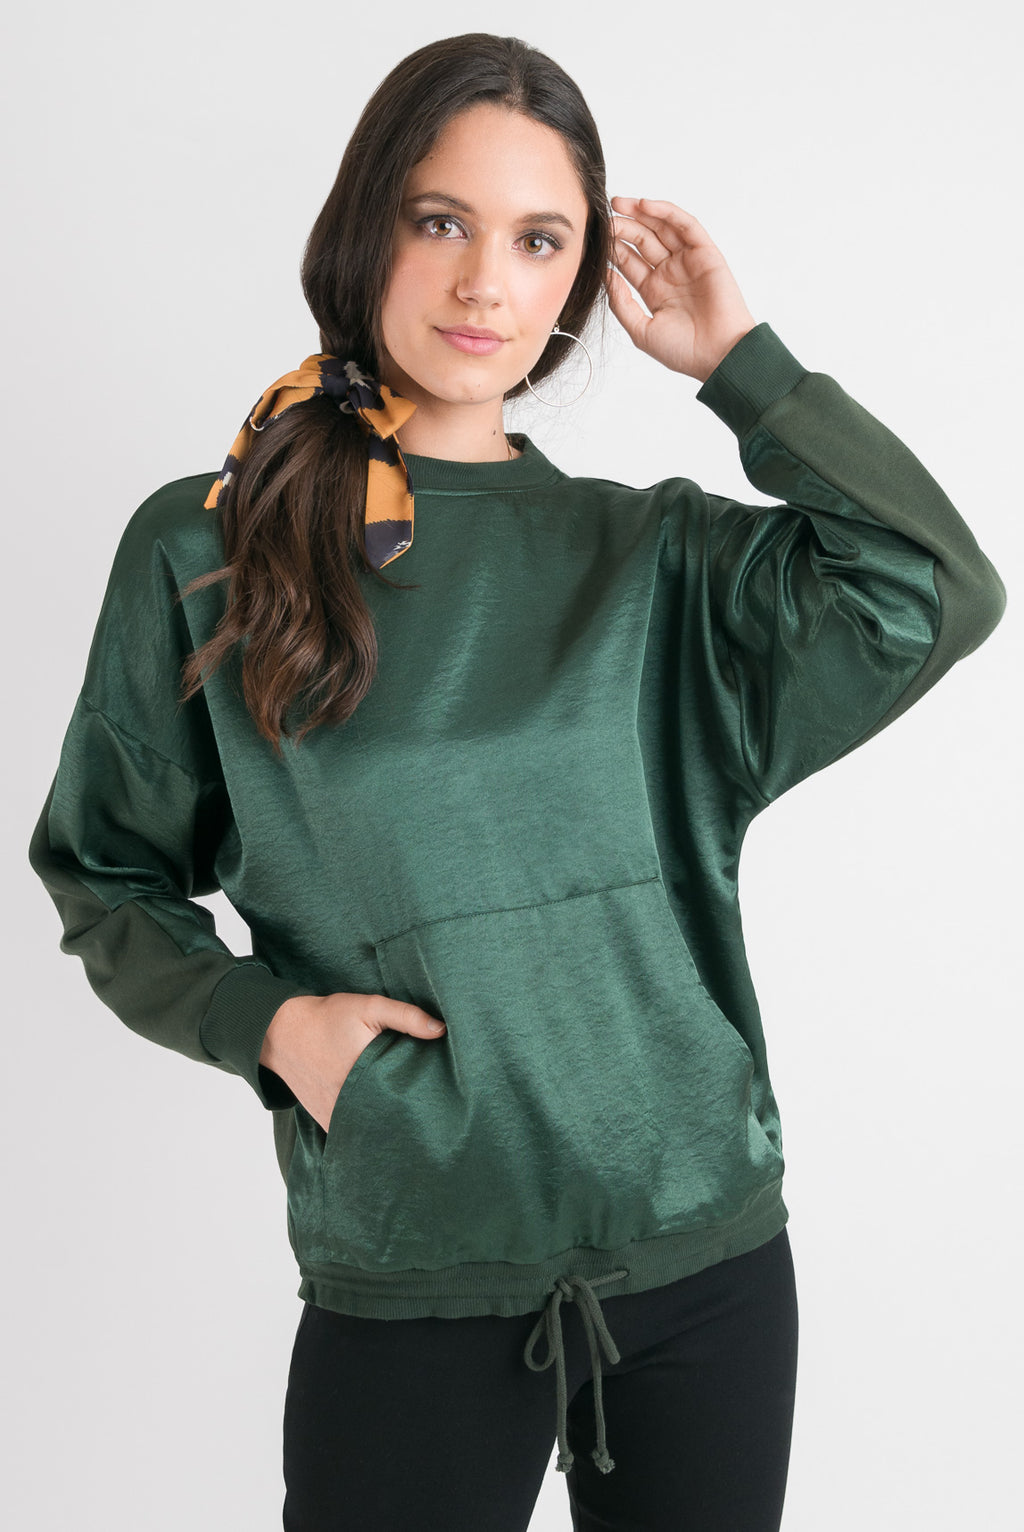 Pocket Sweatshirt - Green